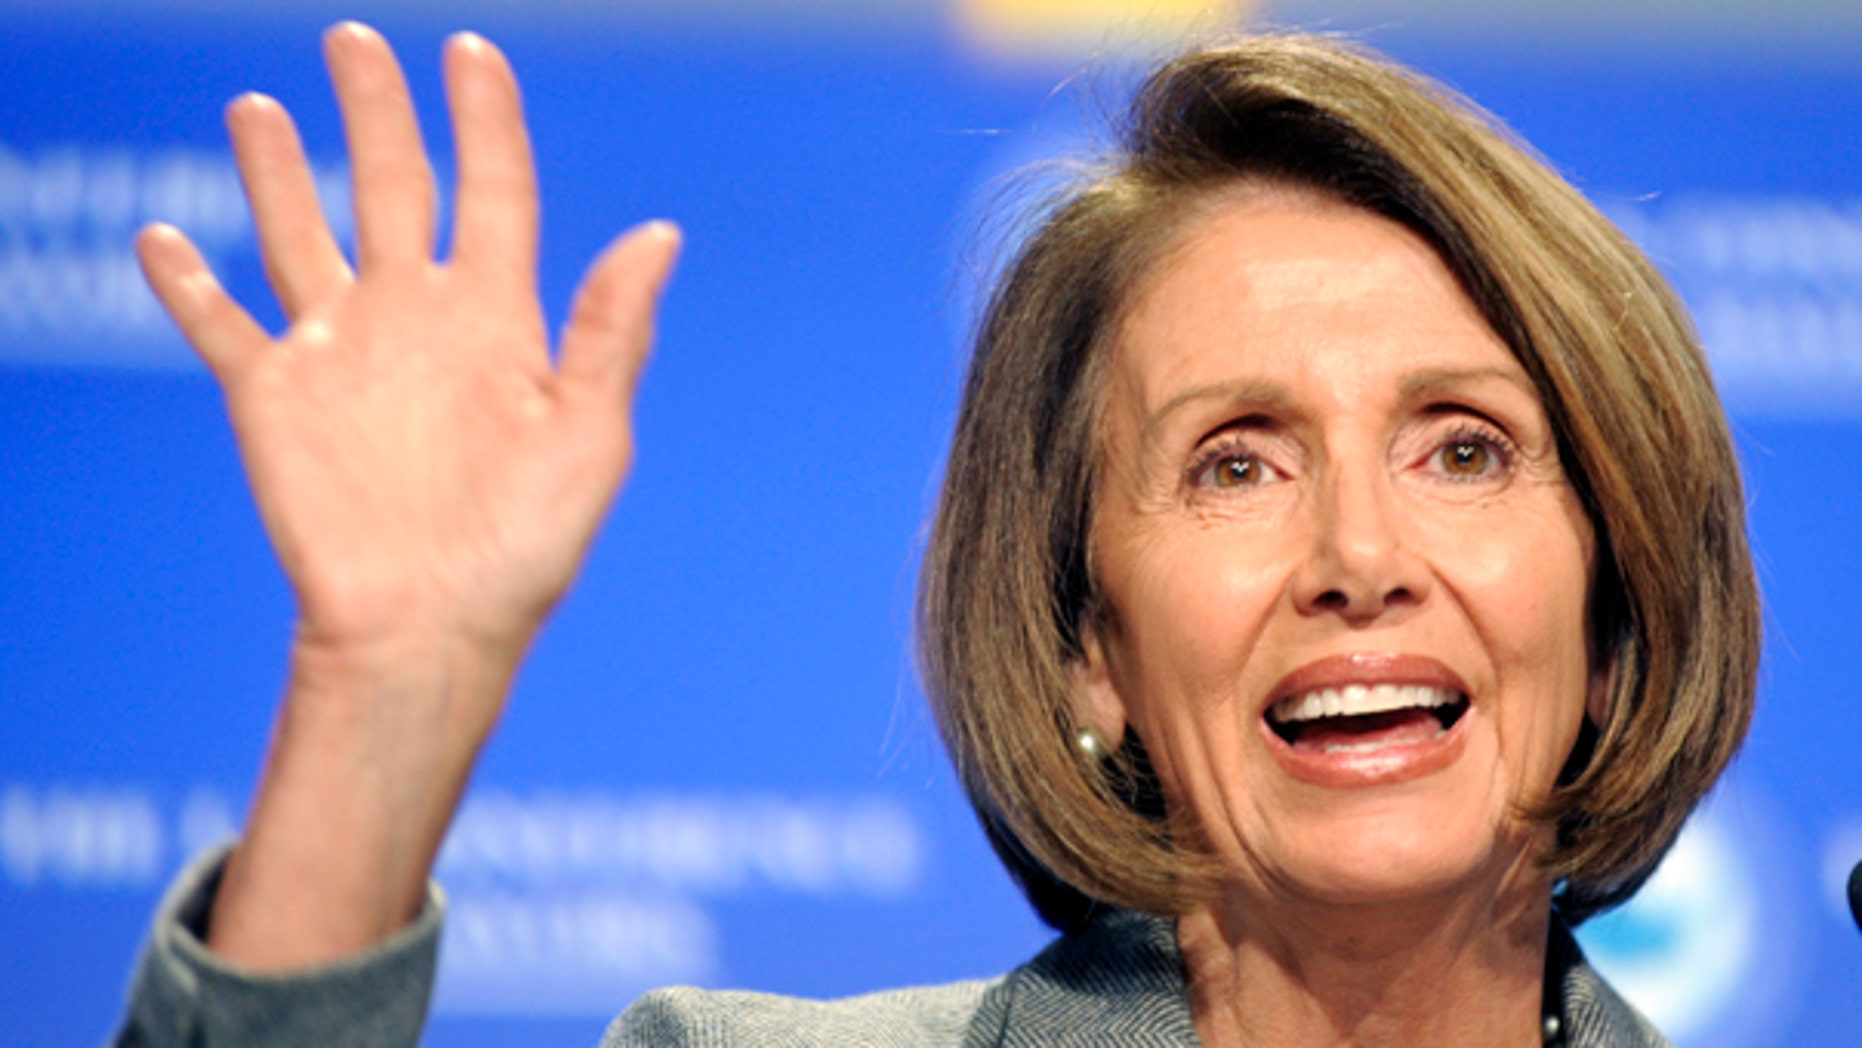 Wednesday: Speaker Nancy Pelosi waves to the crowd at the U.S. Conference on Mayors Wednesday. On Thursday, she waved off House passage of the Senate's health insurance reform bill. (AP)